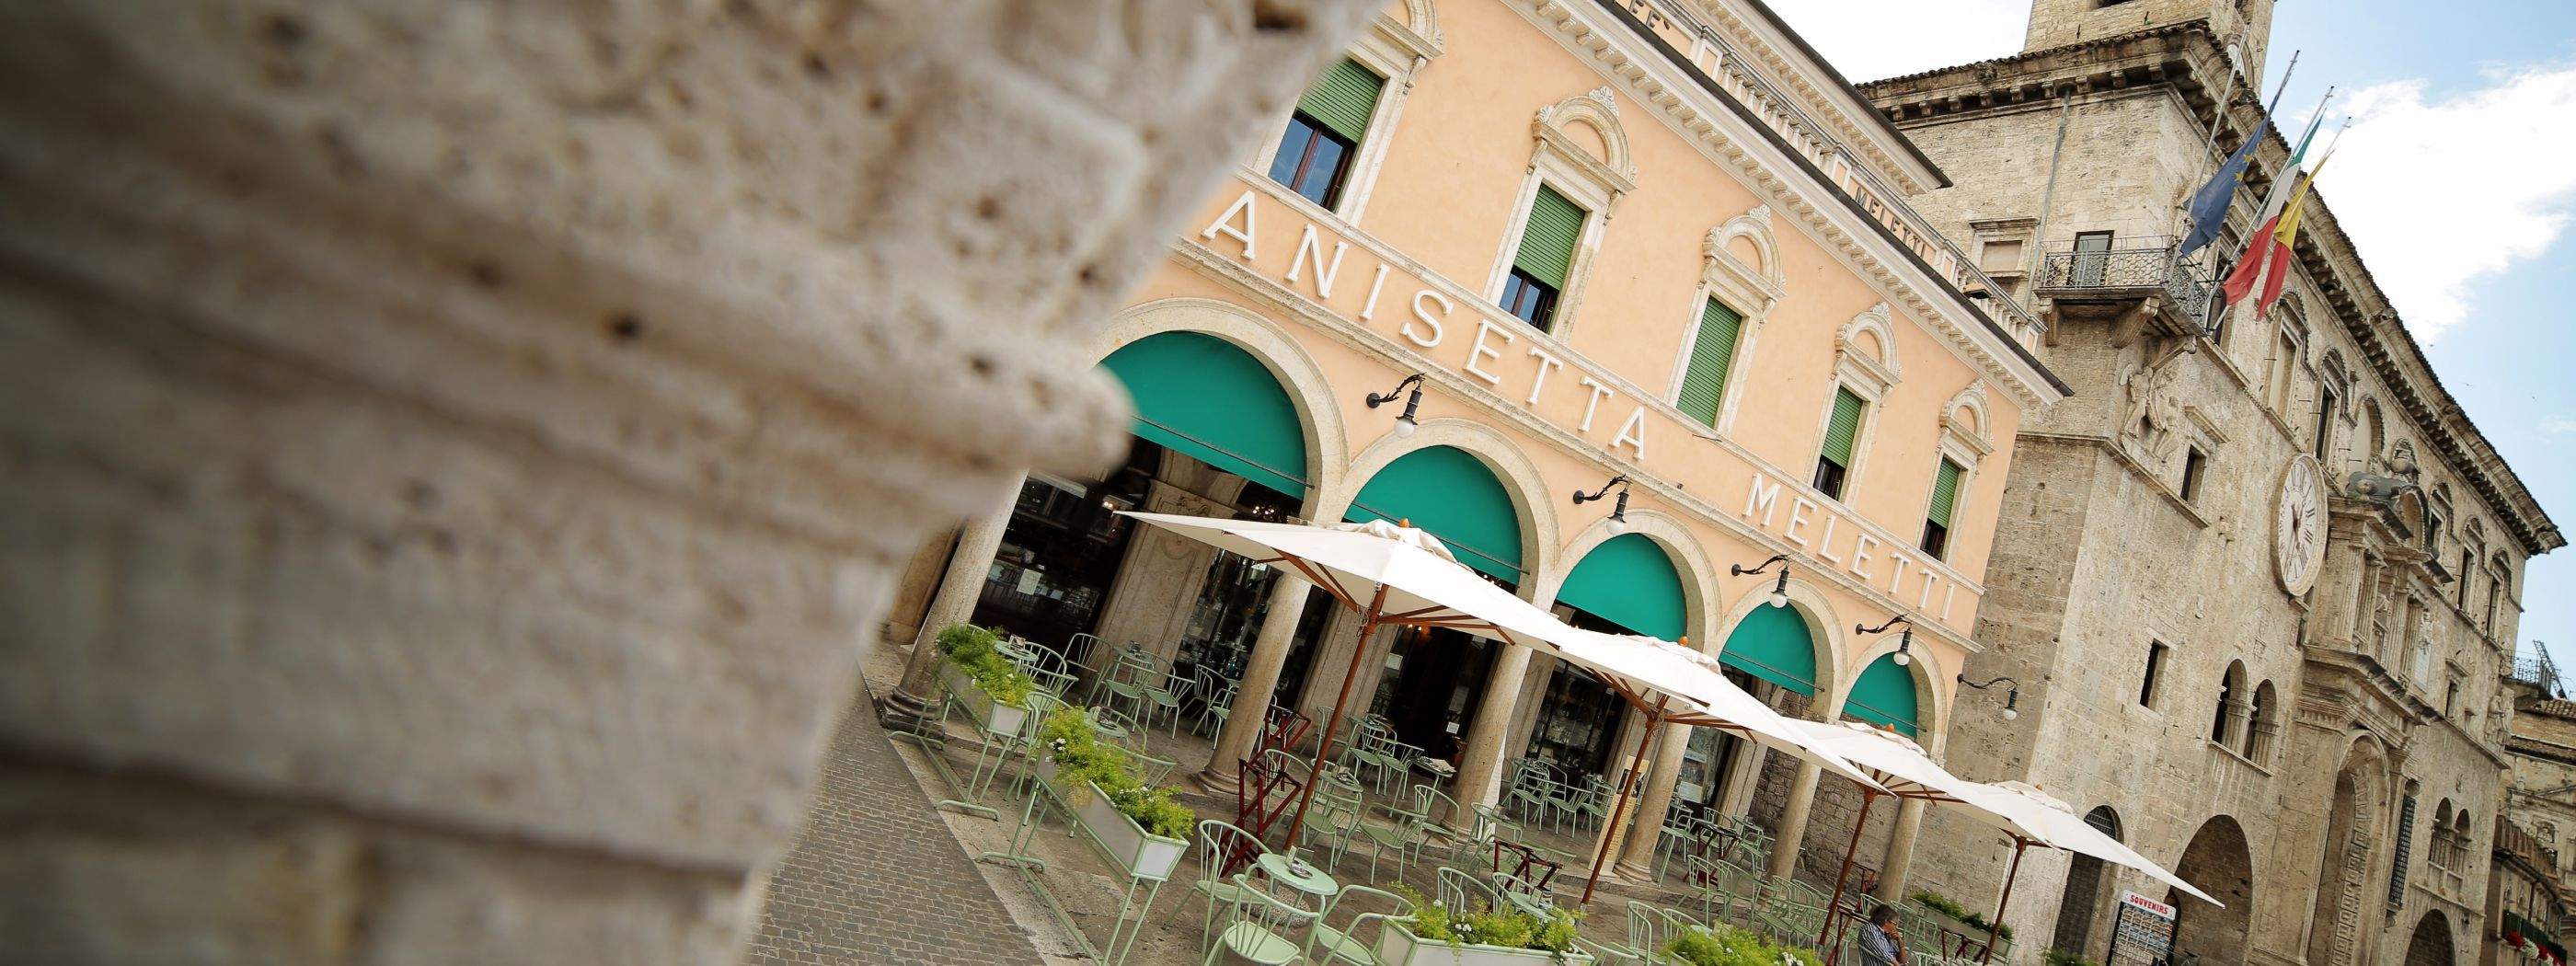 ascoli_piceno_holiday_accommodation-marche